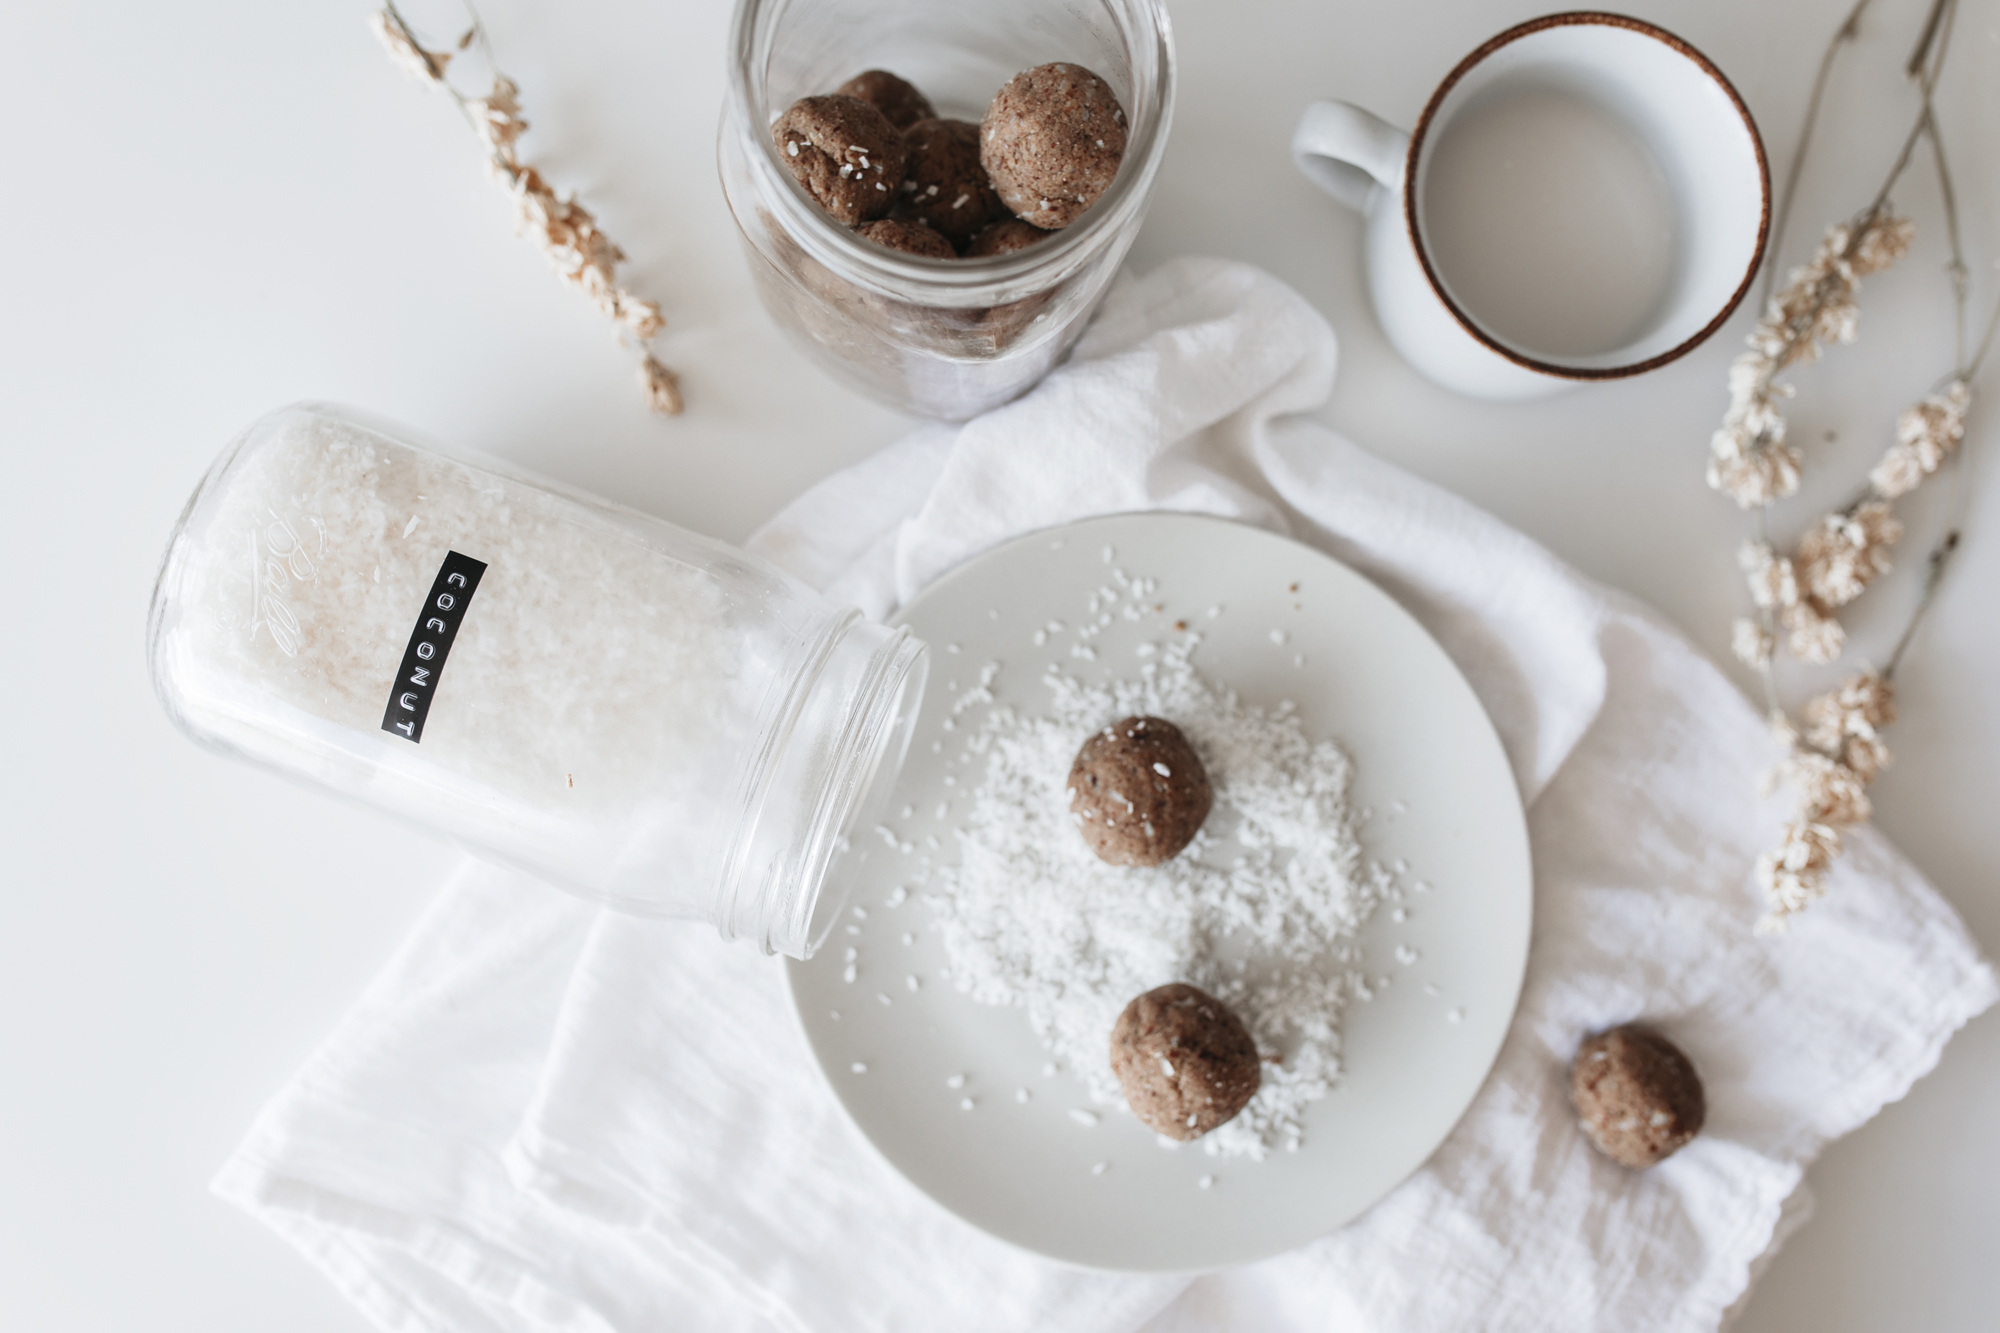 creative bloggers need to fuel their bright minds with the best nutrients to live a healthy balanced lifestyle. These bliss-balls with coconut and chia are perfect for that!